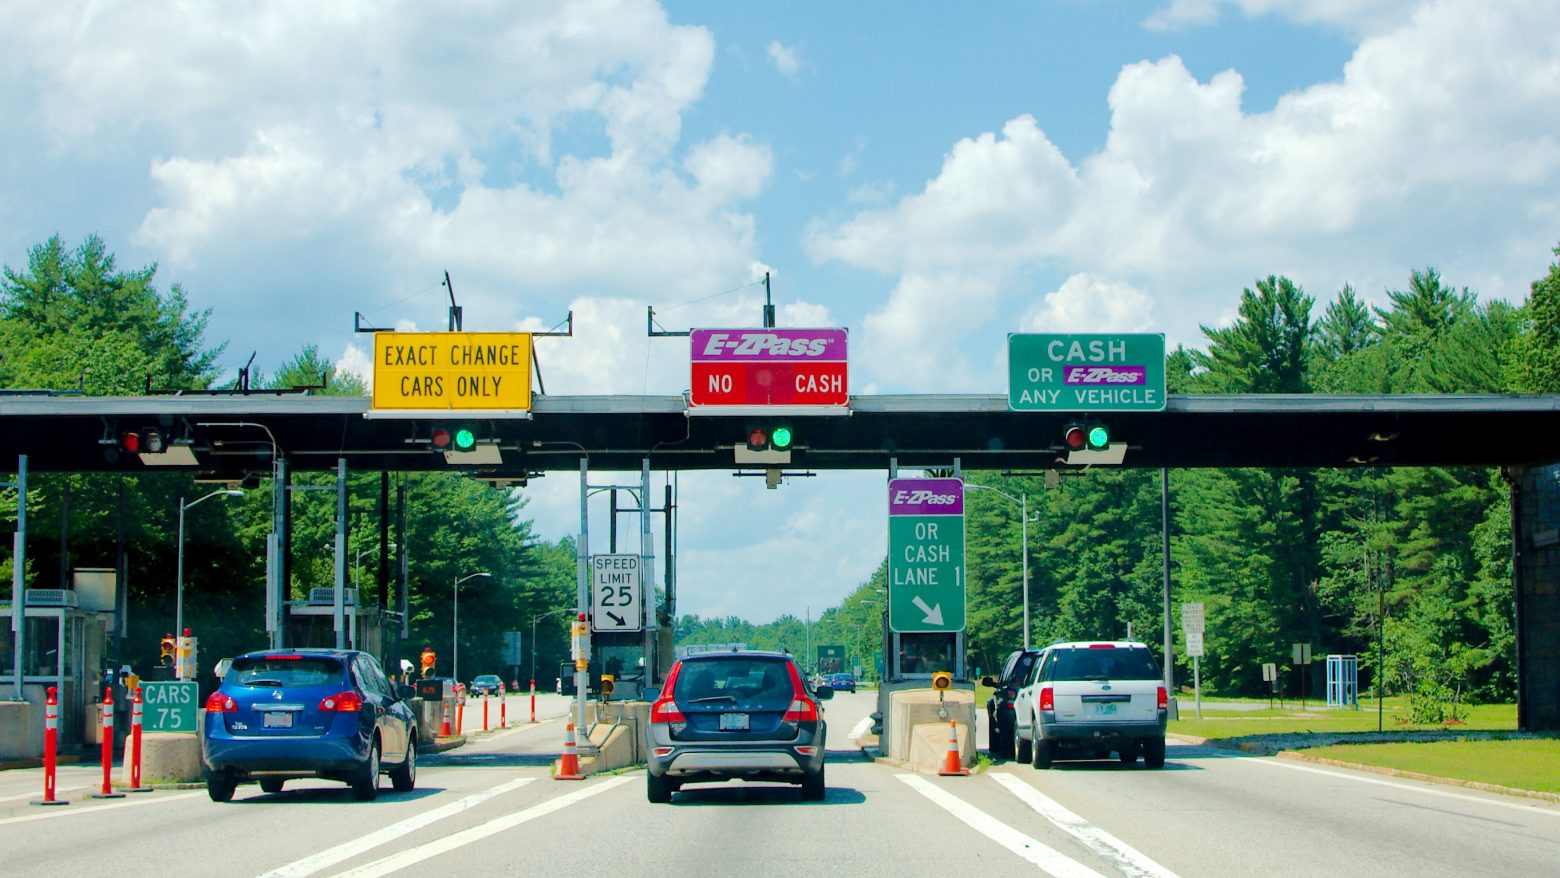 NY Gets Strict on Repeat Toll Evaders | Rosenblum Law Firm